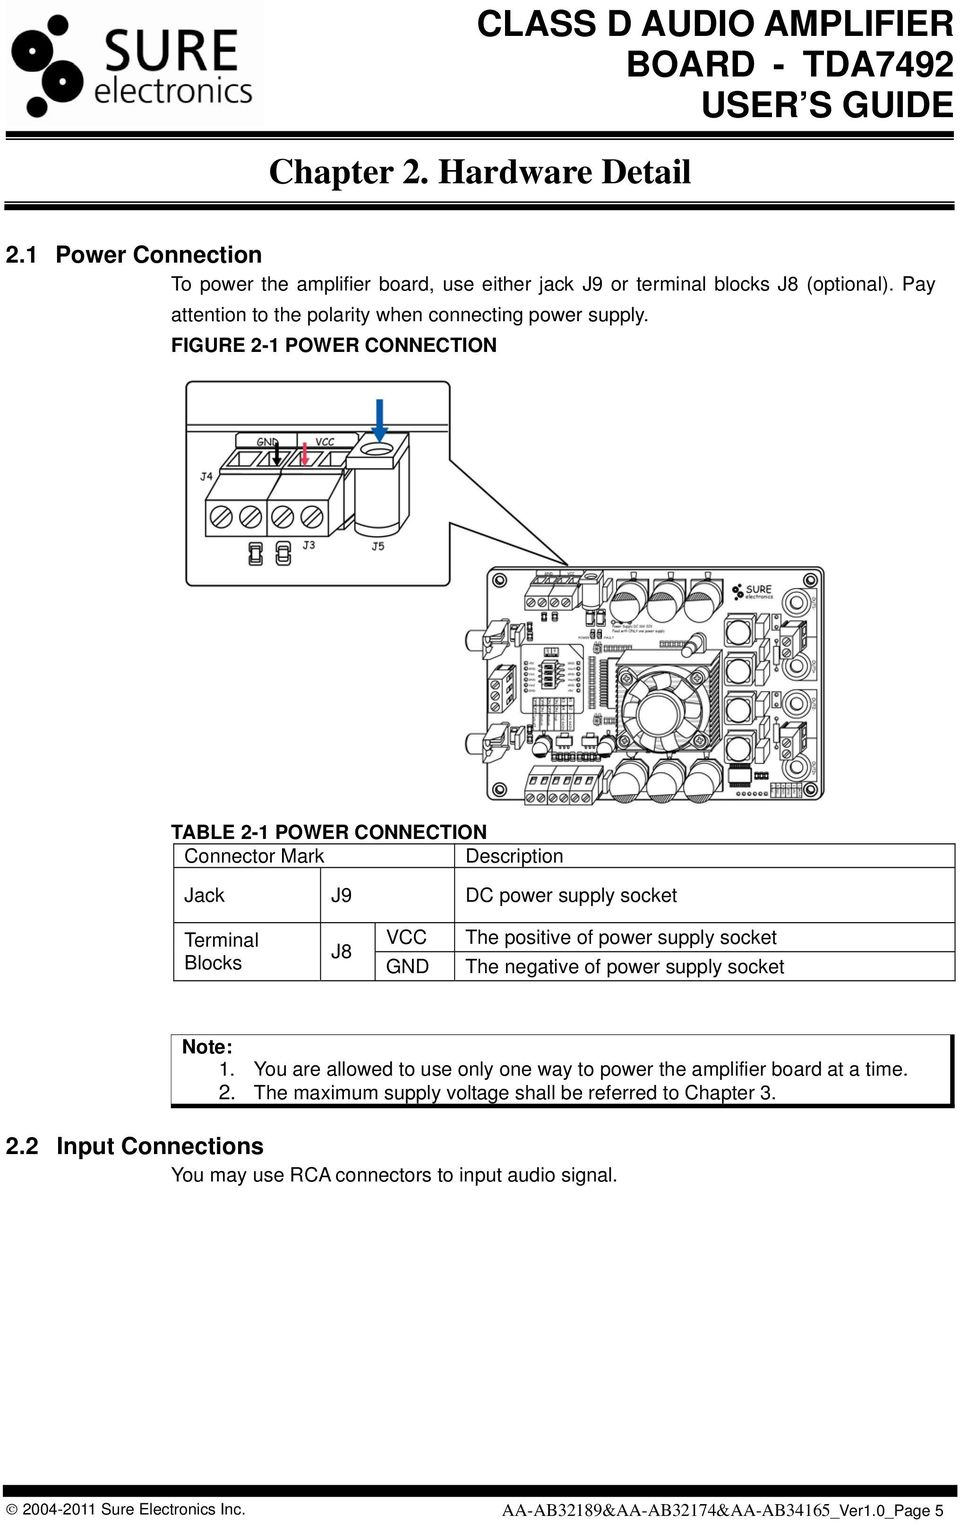 Class D Audio Amplifier Board Tda7492 User S Guide Pdf Wiring Diagram Car Mono Using Ic Tda2040 Real Auto Tips Figure 2 1 Power Connection Table Connector Mark Description Jack